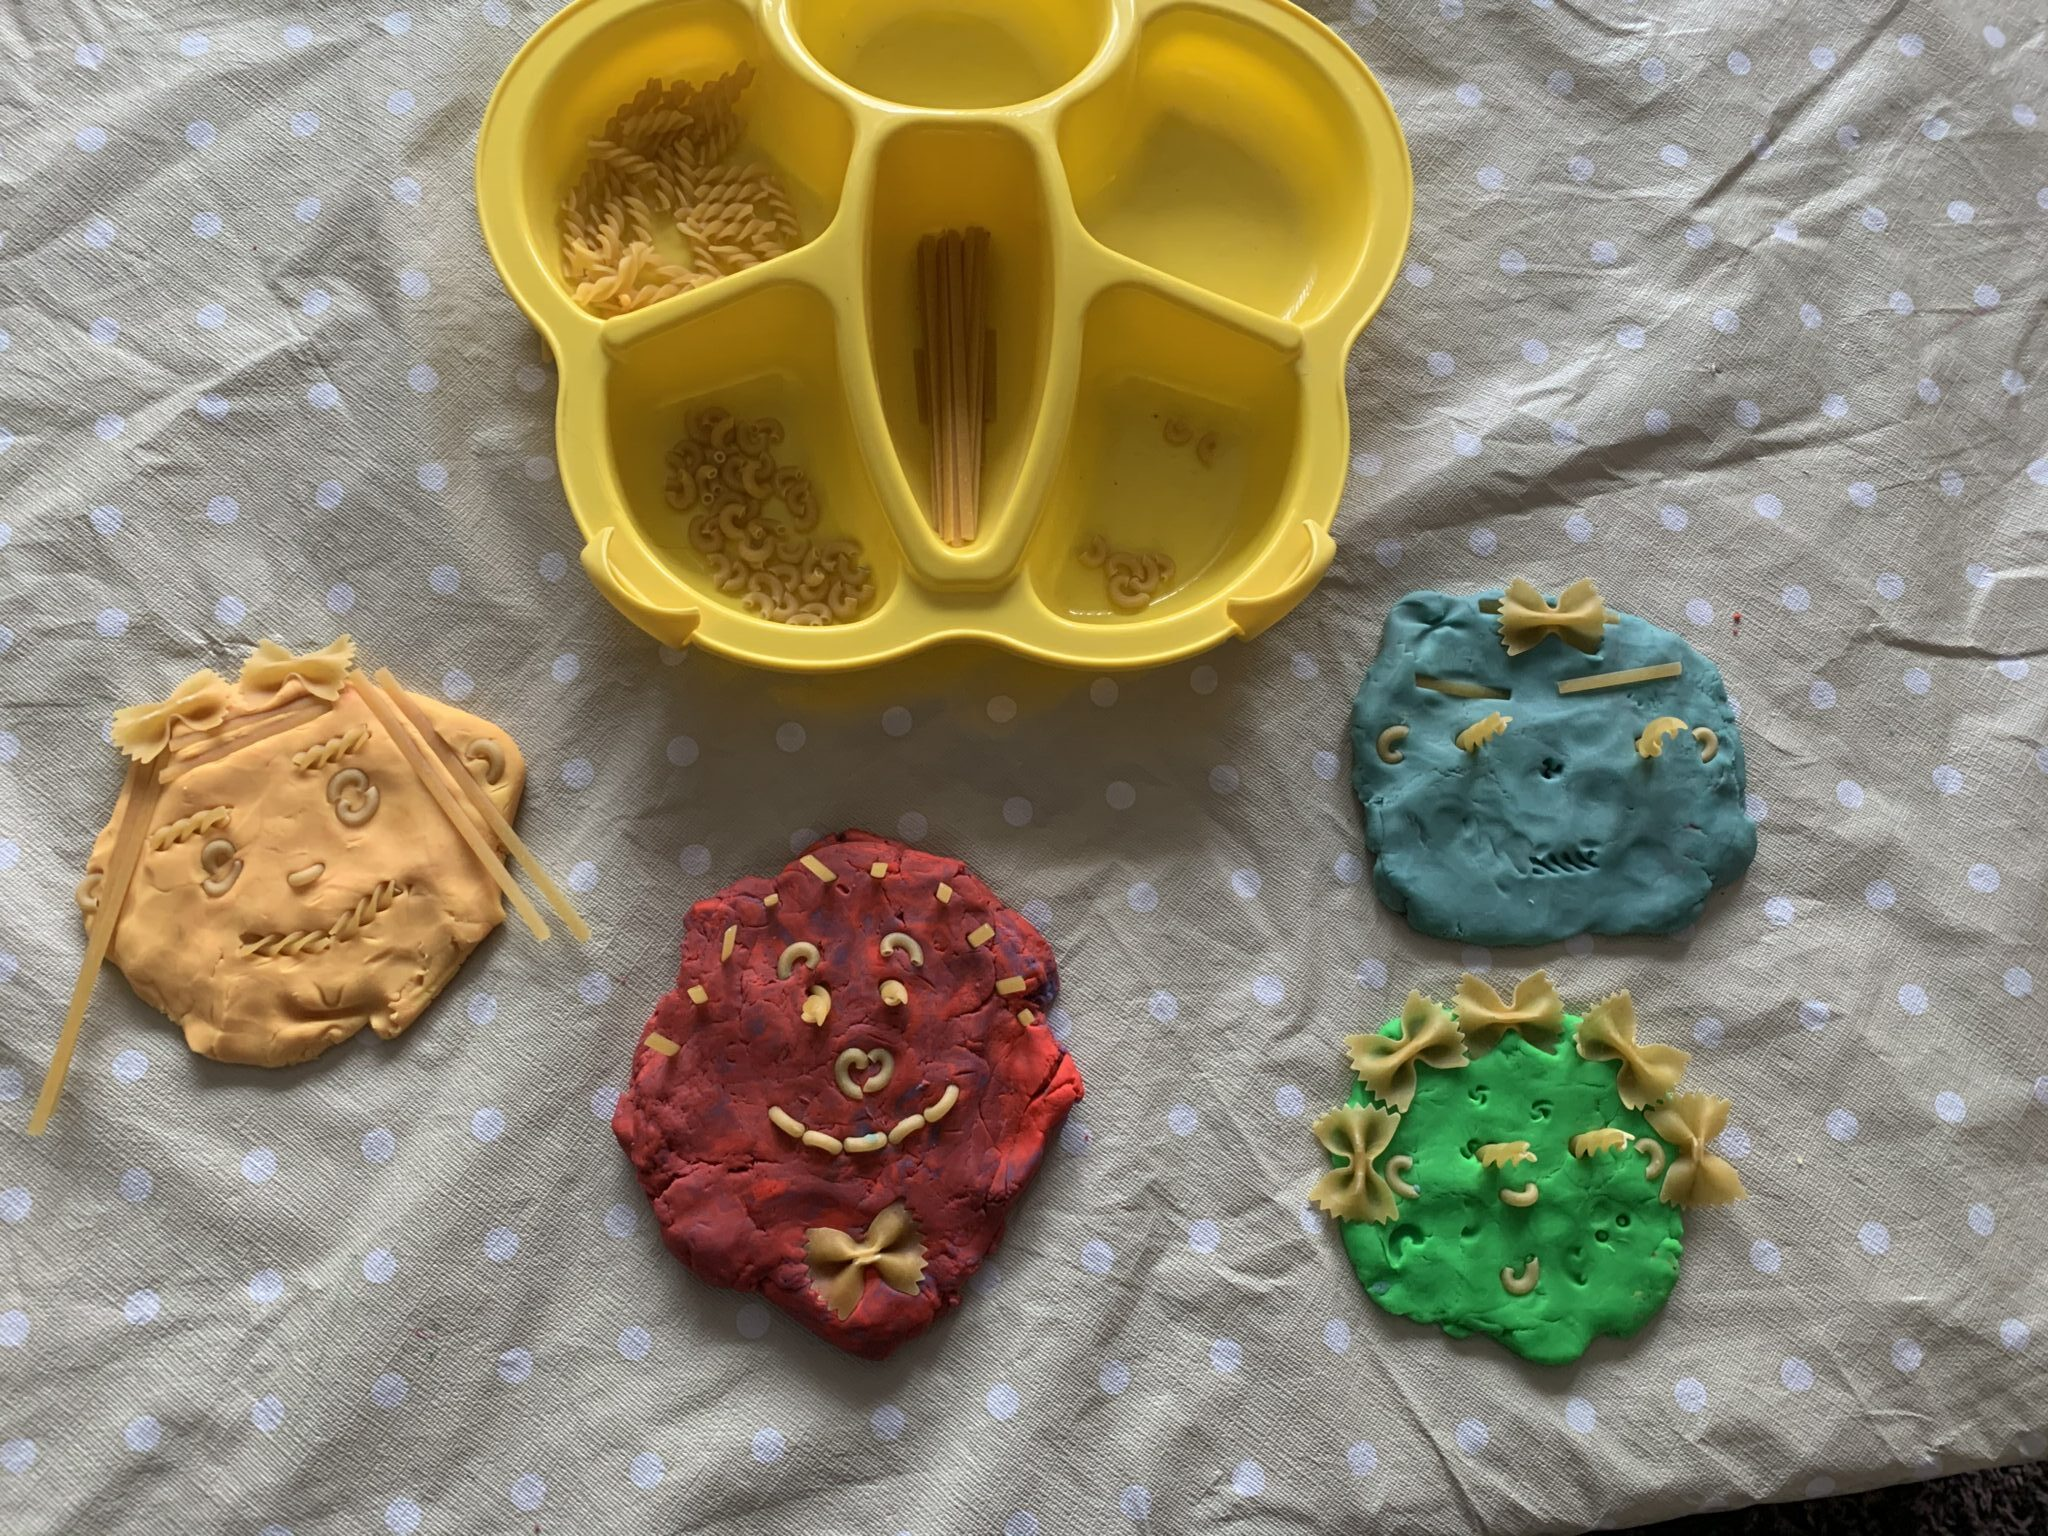 Grab your play dough, pasta and your smiles because it's time to create a Family portraits activity that's simple enough toddlers can do it!